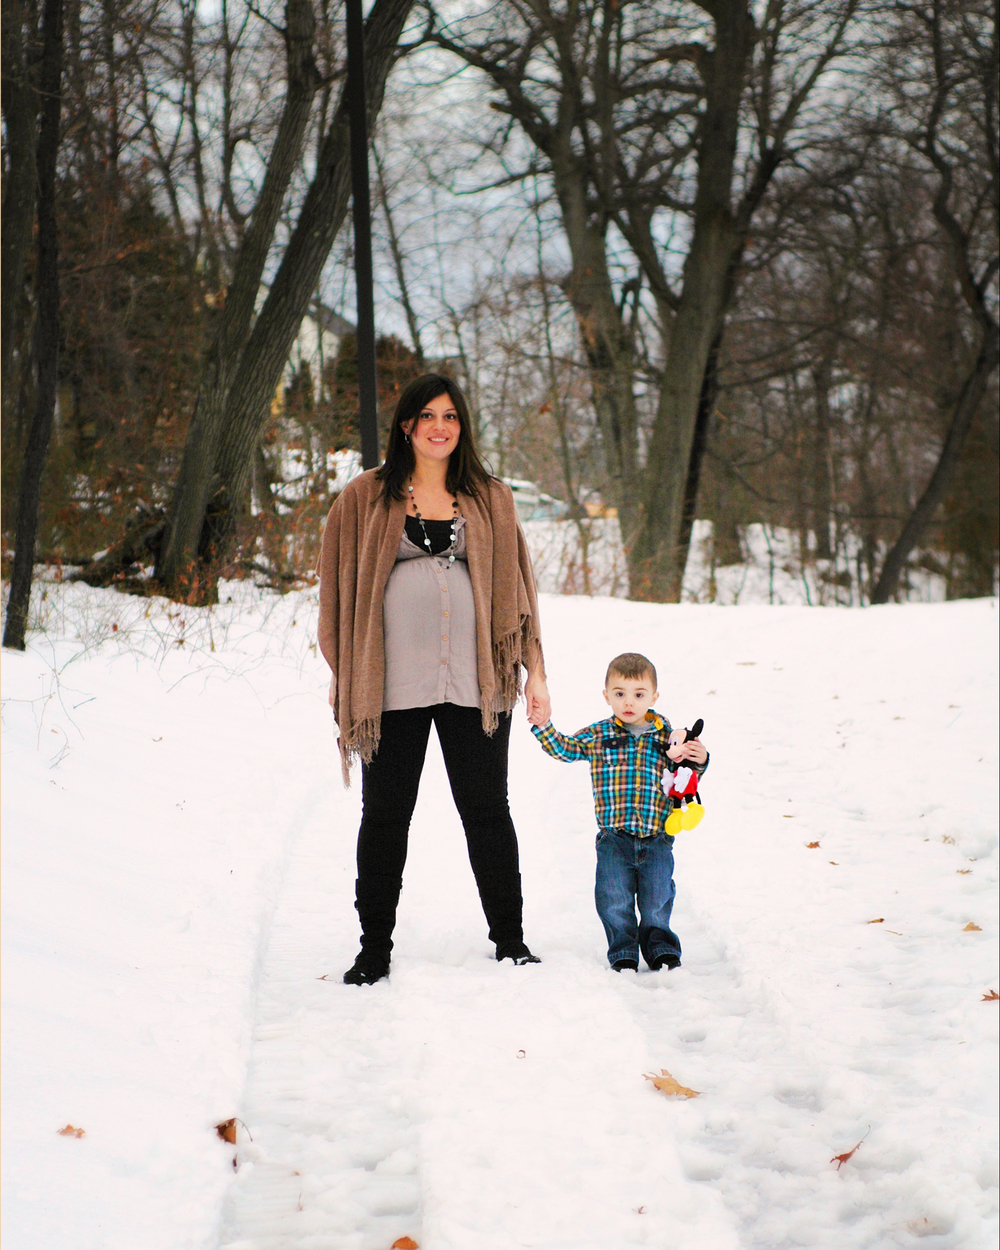 Northshore MA winter on location maternity and family photographer